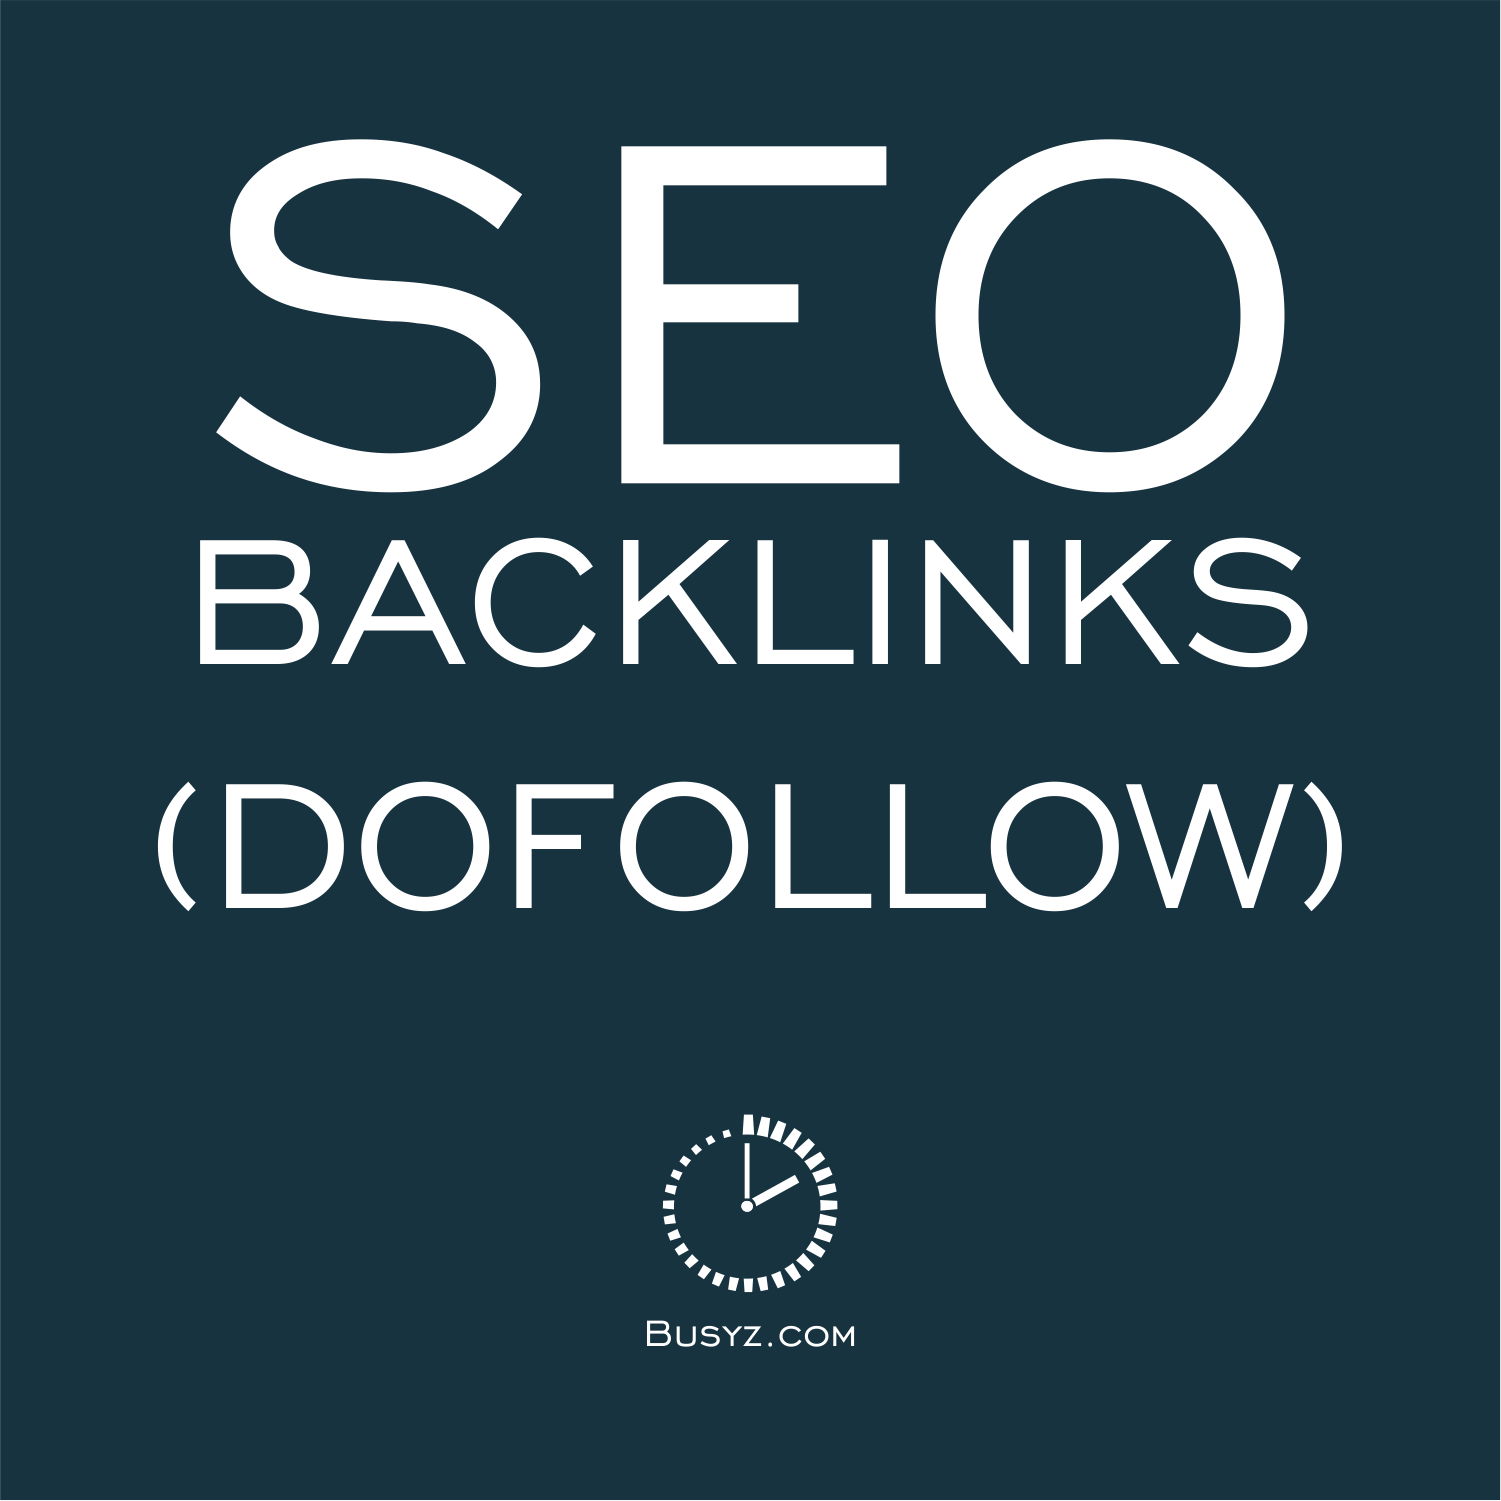 Jasa Backlink indonesia